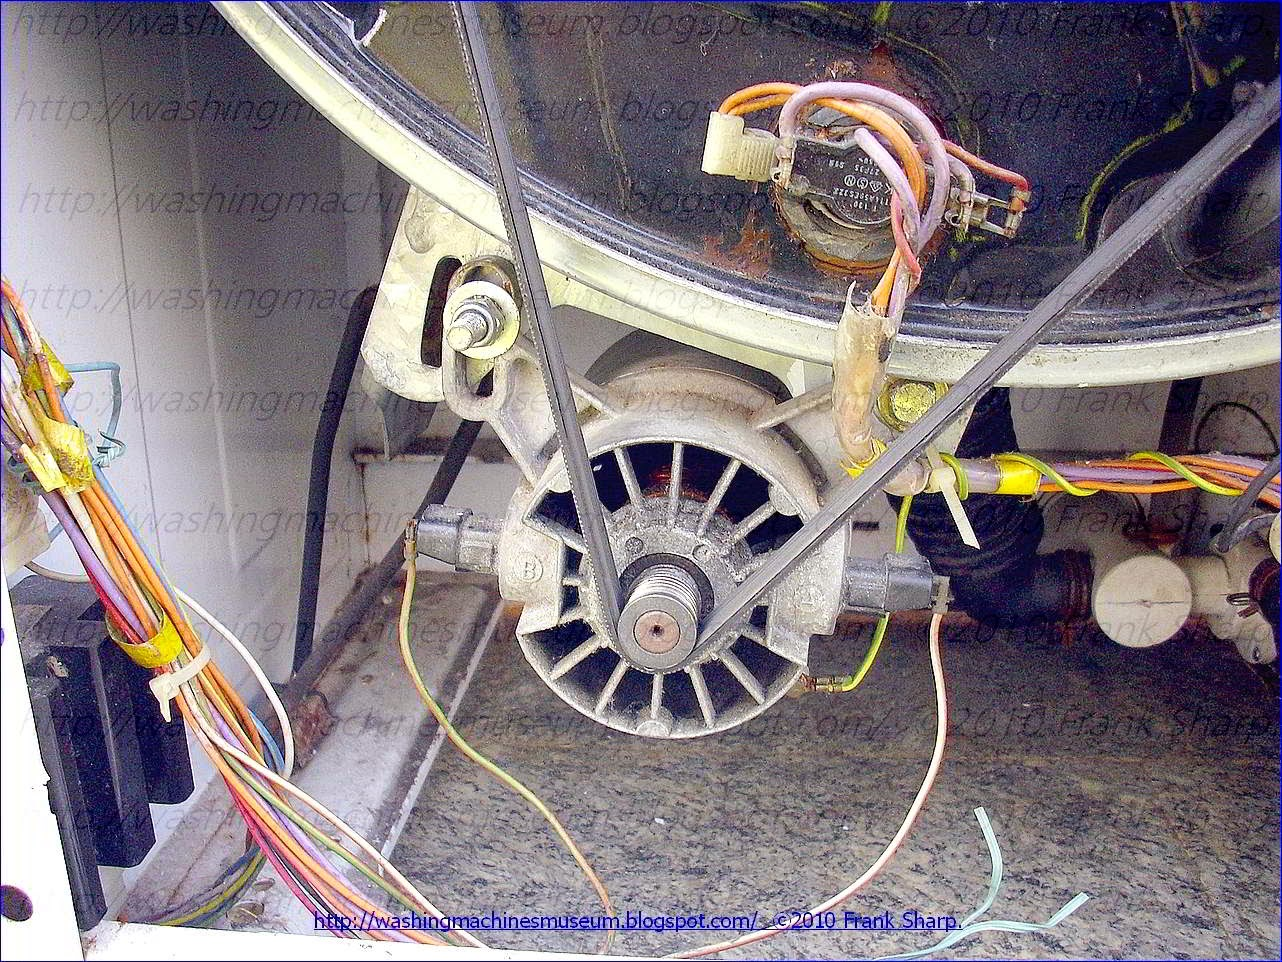 Washer Rama Museum Ignis K15 Philips Awf633 Ig Pm System Semi Automatic Washing Machine Wiring Diagram The Spin Drying Speed In A Which Comprises Motor For Driving Drum Can Operate At Two Different Speeds Low